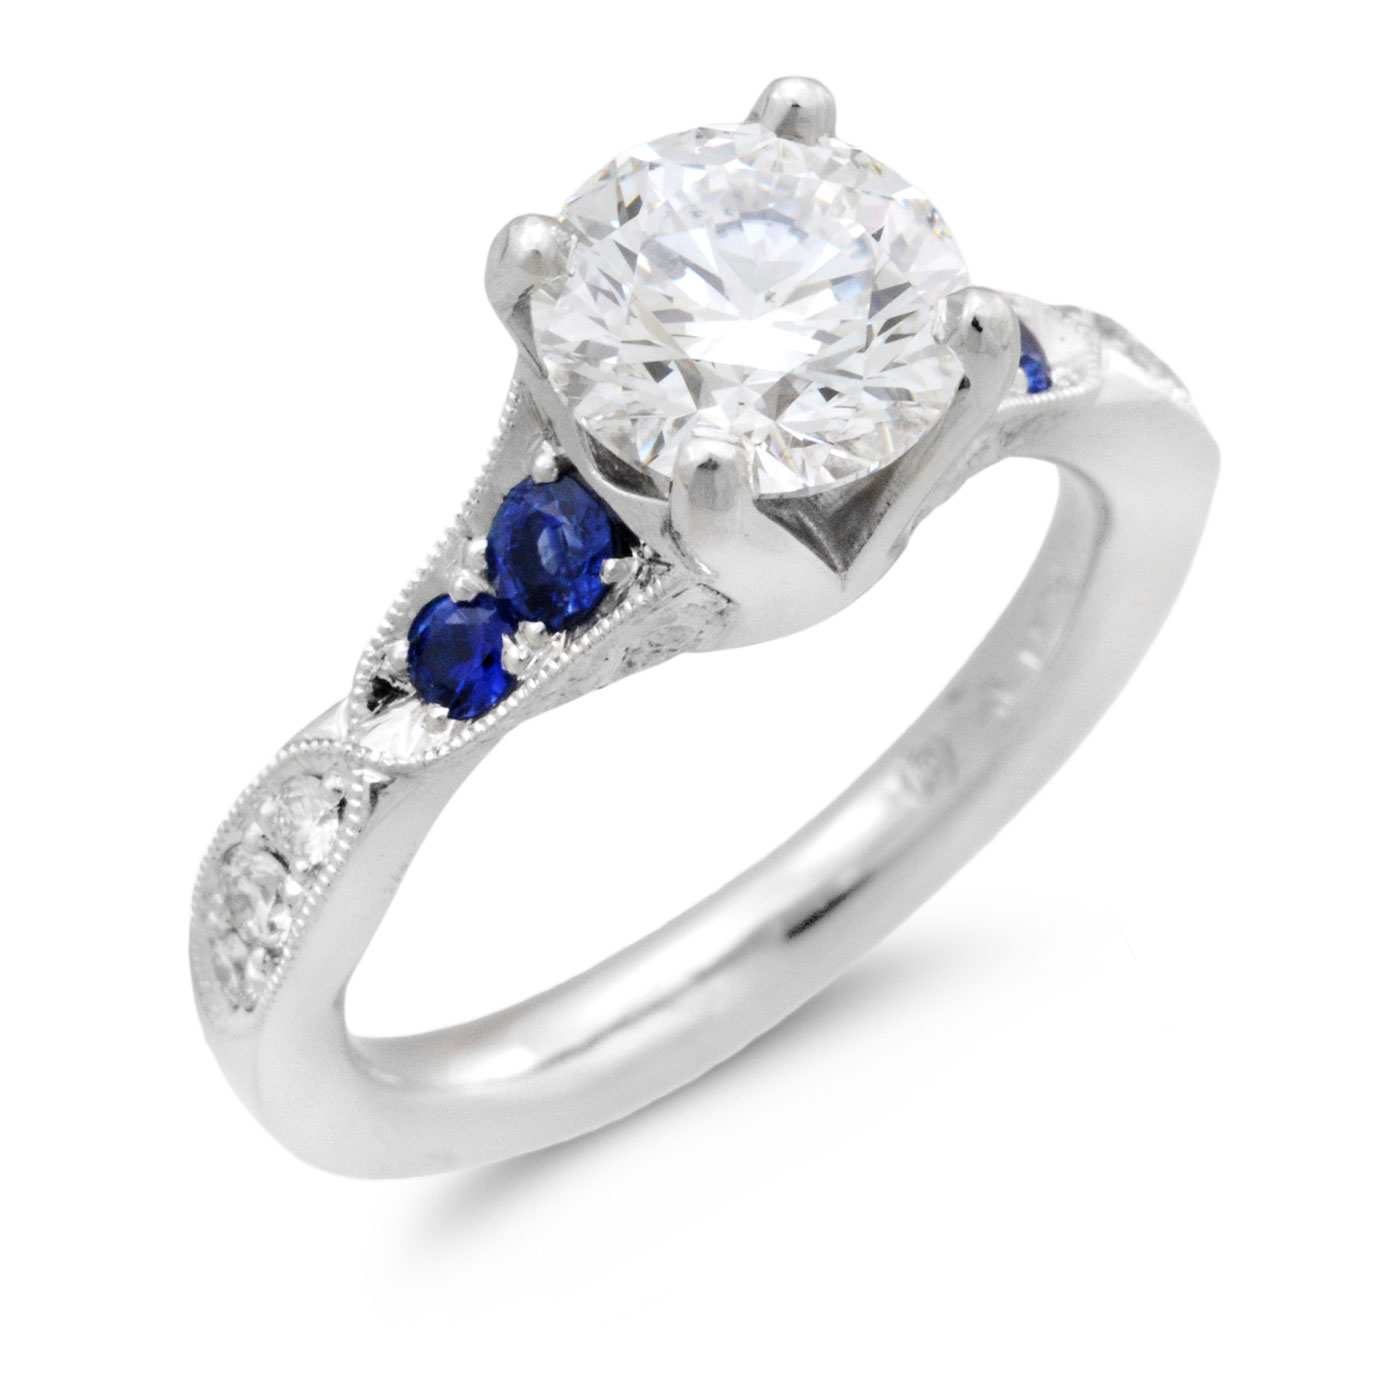 C6616 Platinum Engagement ring with Sapphires